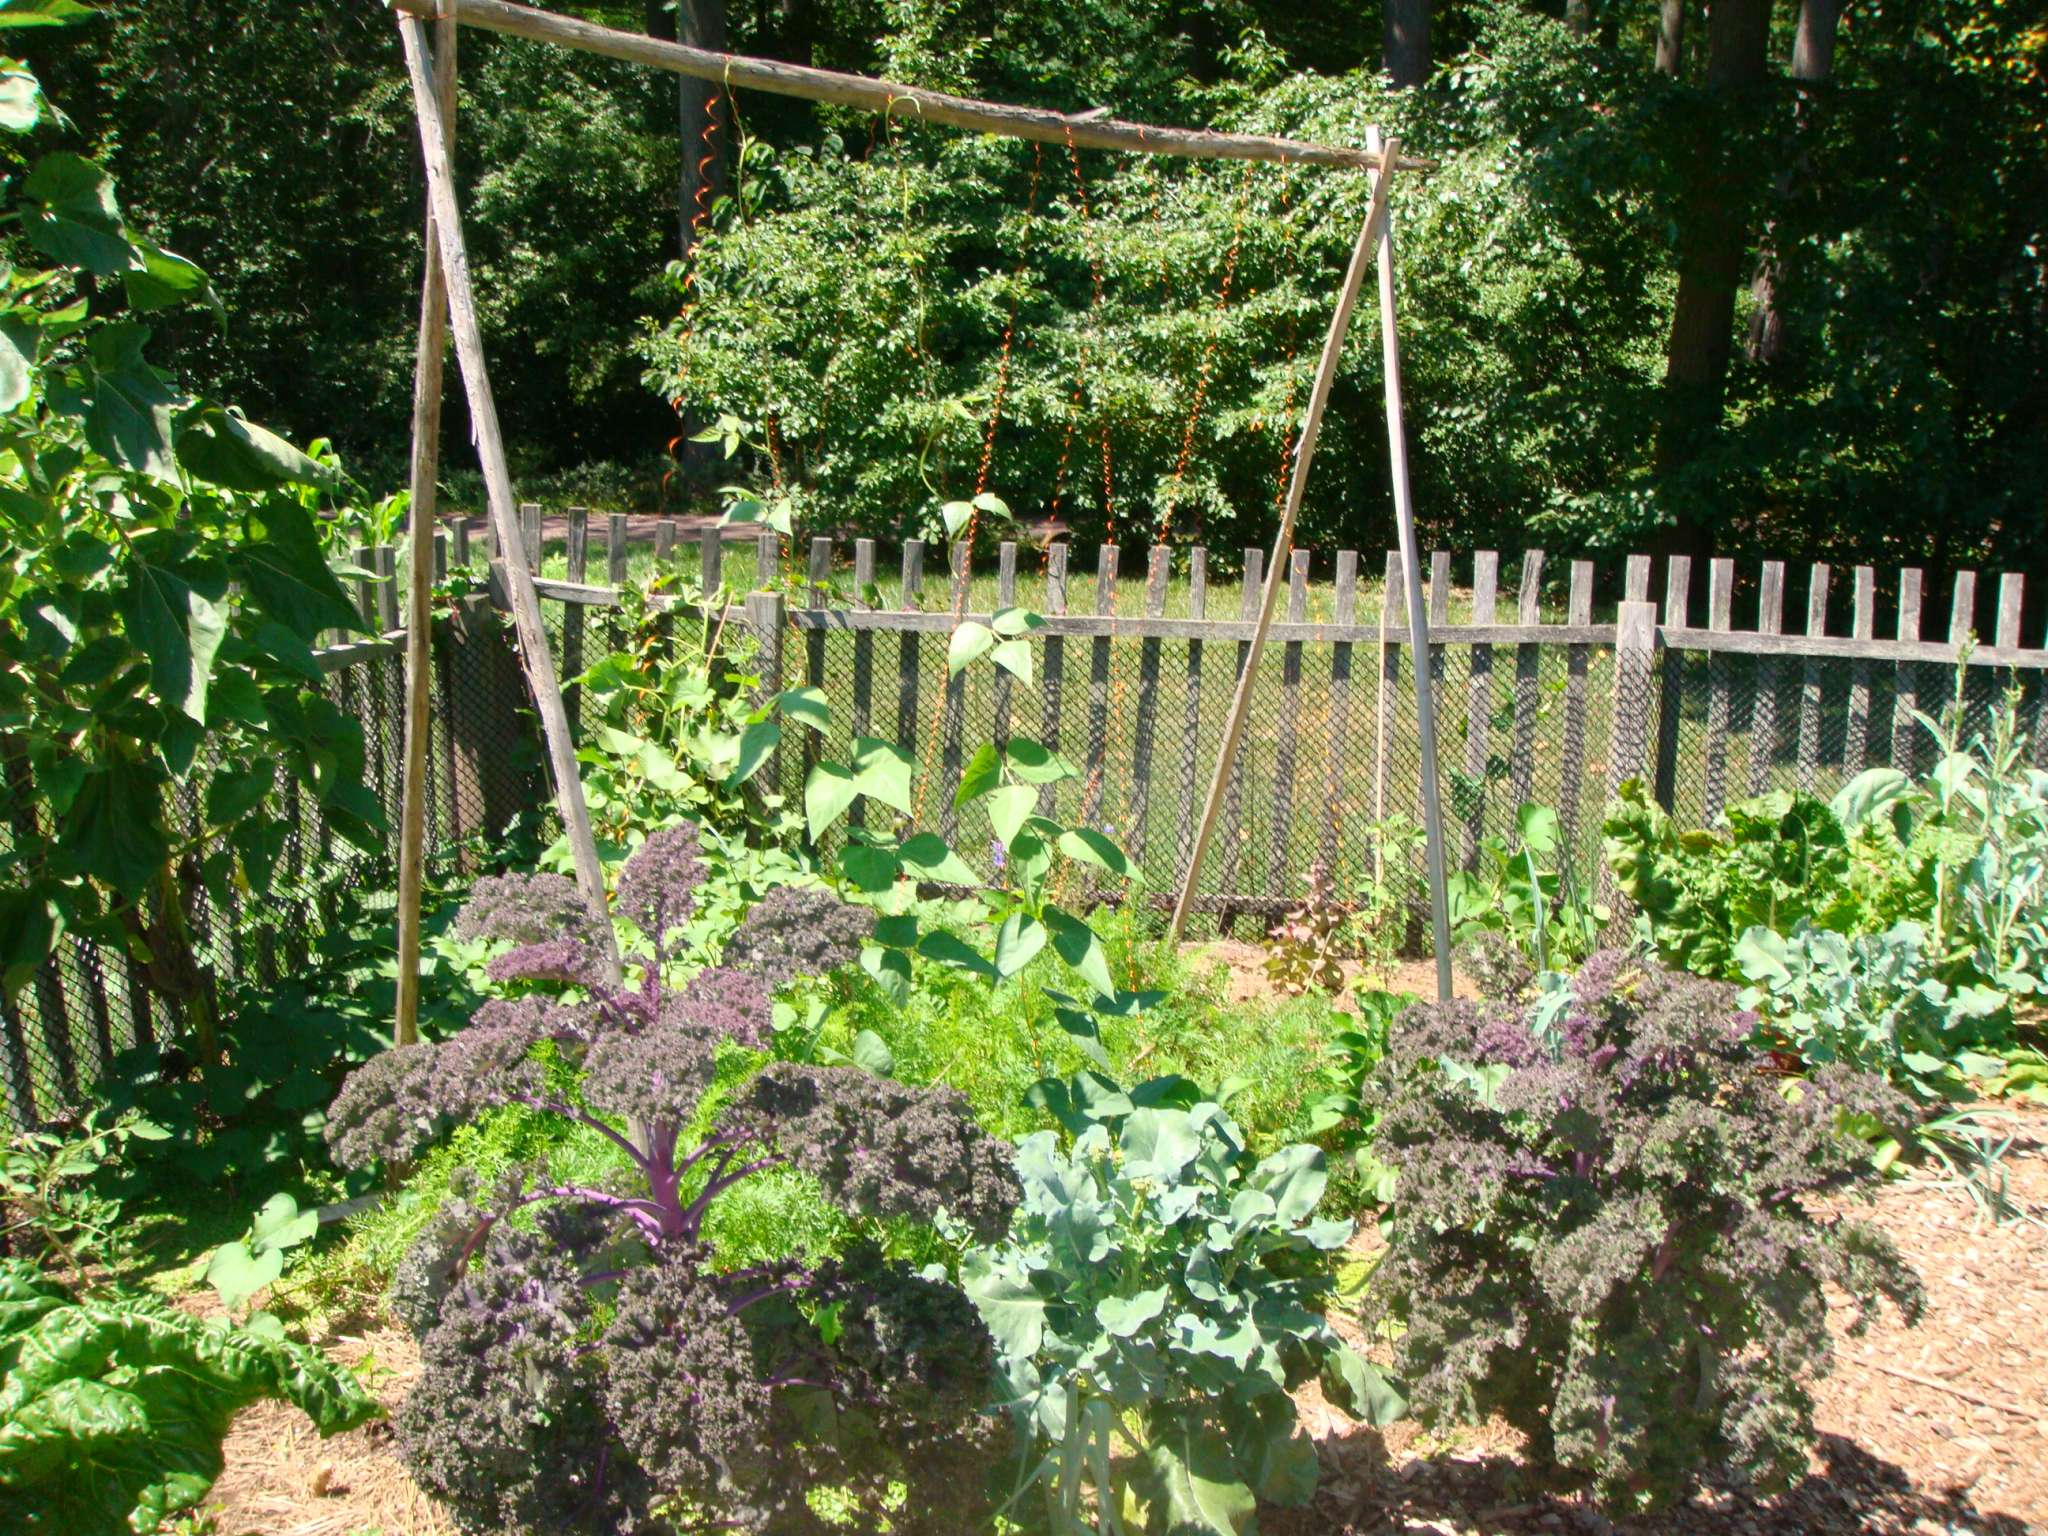 green bean trellis-vegetable gardens